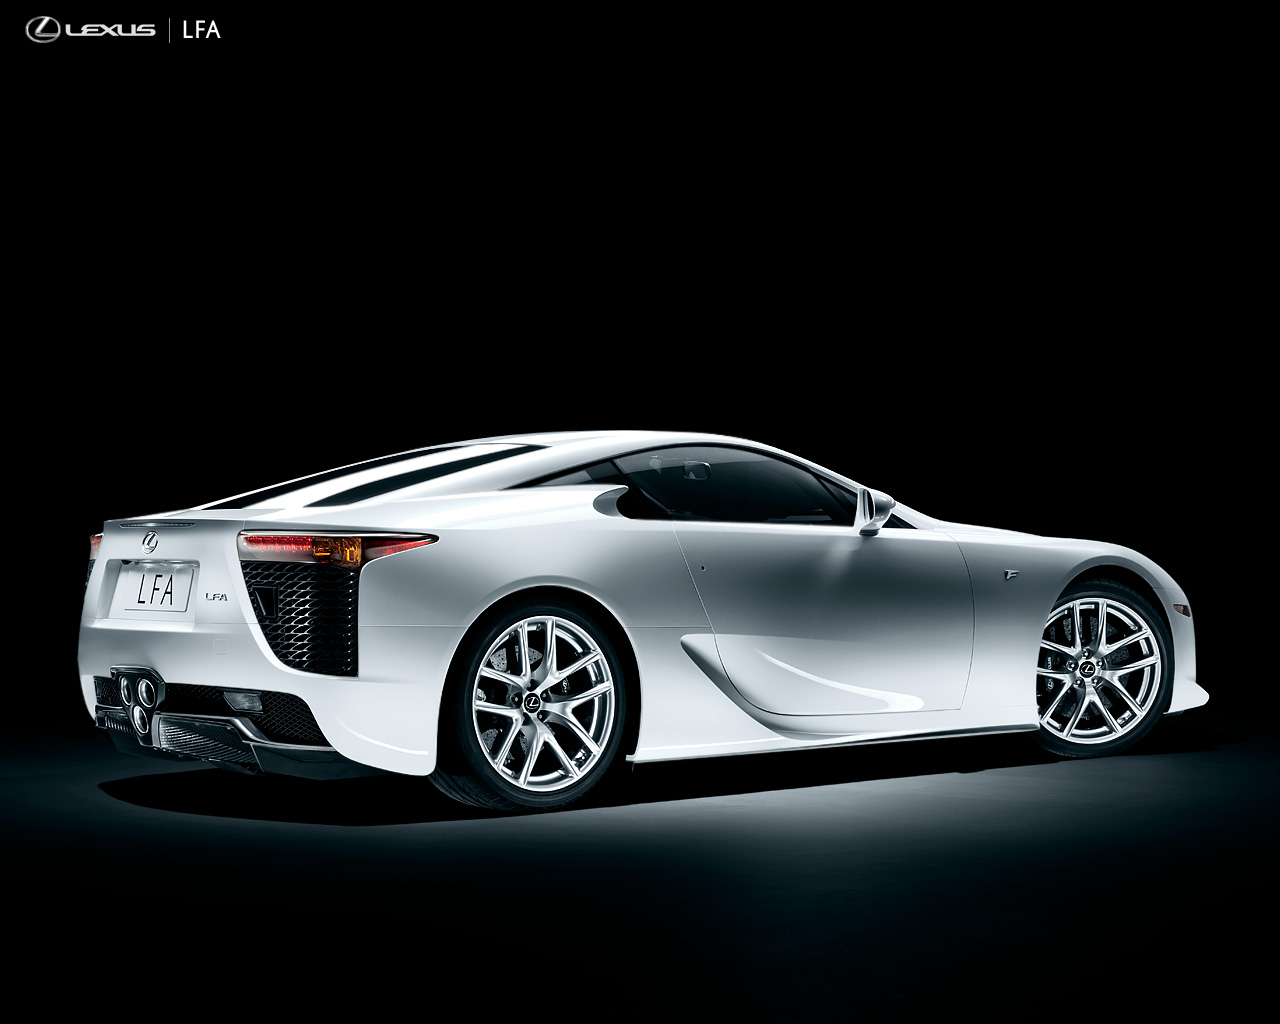 2012 lexus lfa wallpapers car wallpapers. Black Bedroom Furniture Sets. Home Design Ideas